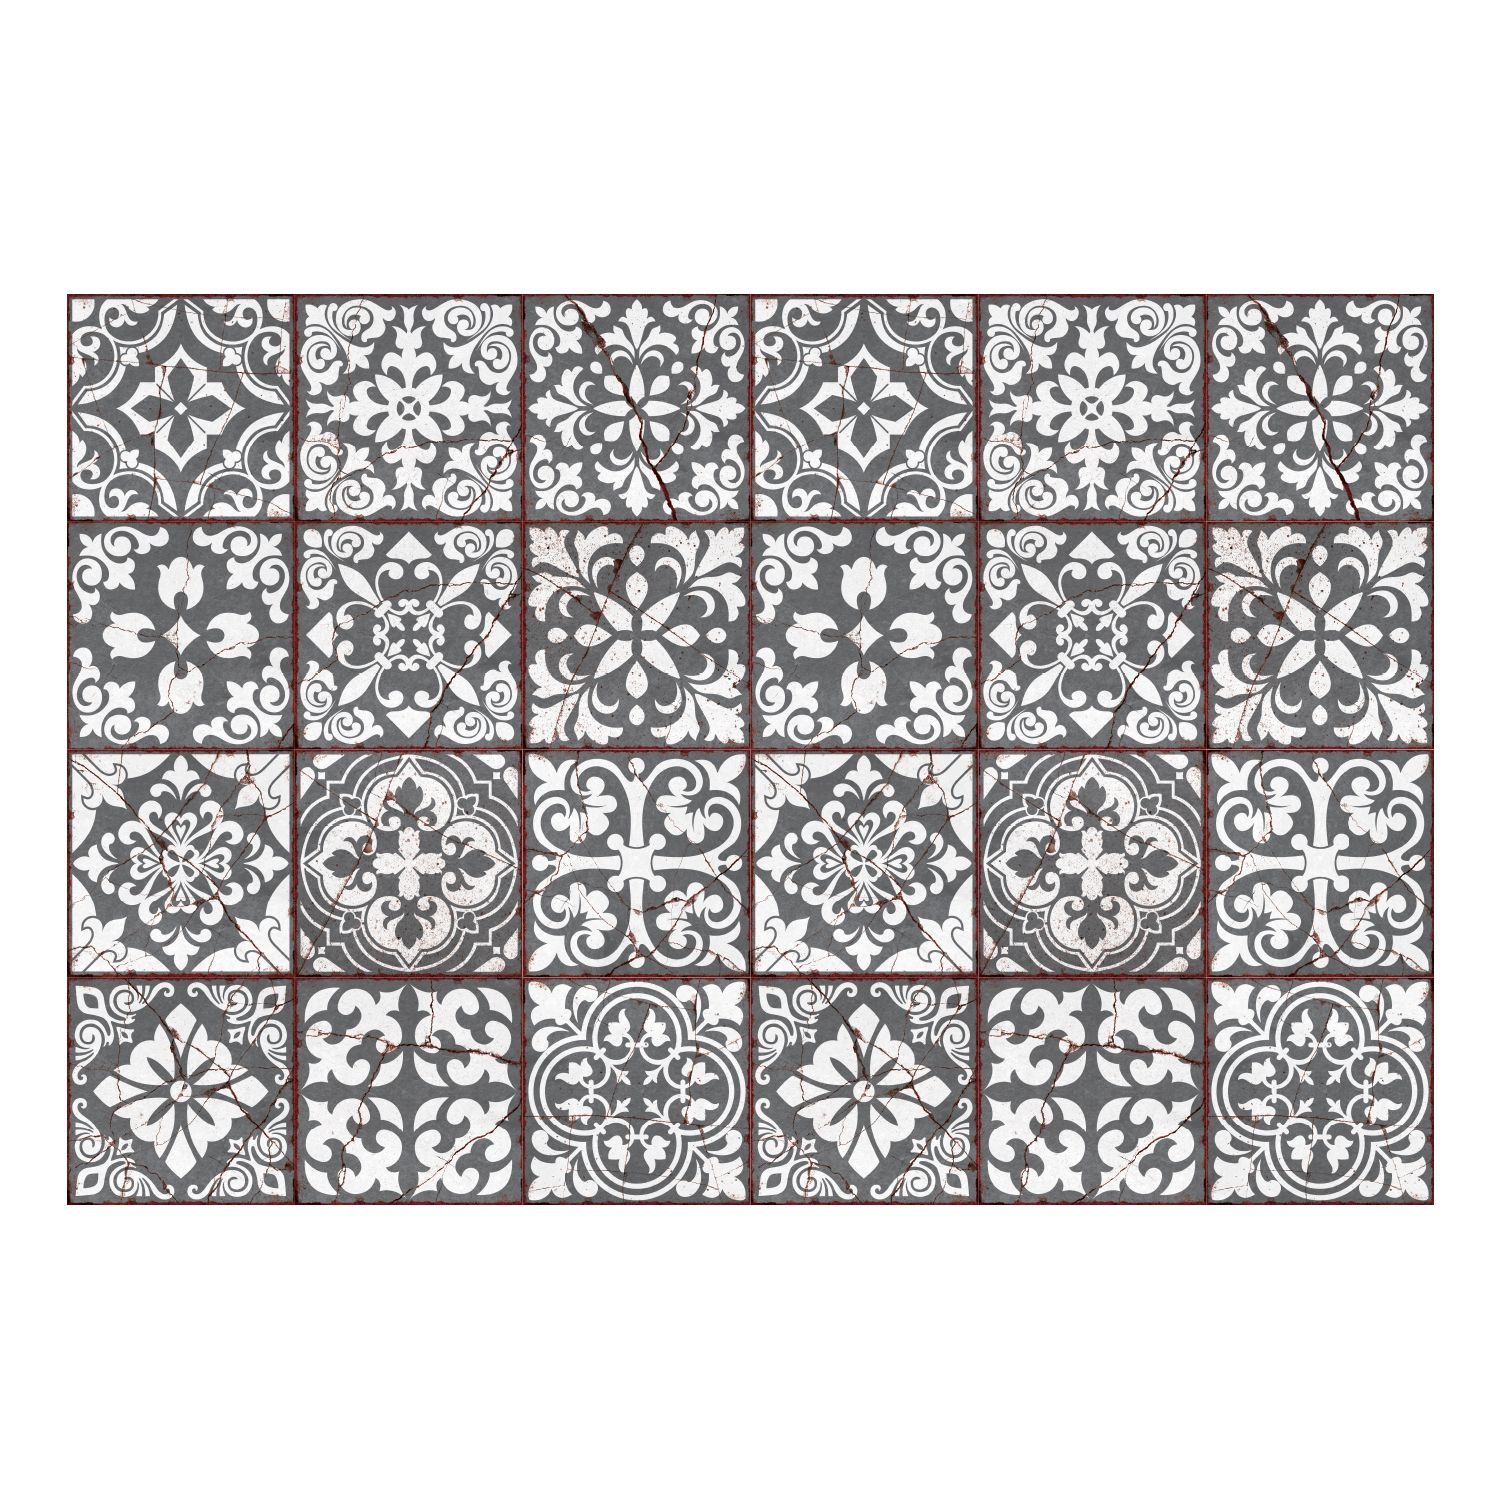 Vintage Cracked Design Medieval Tiles Wall Stickers - 15 x 15 cm (6 x 6 inches) - 24 pcs Wall Art, DIY Art, Home Decorations, Decals